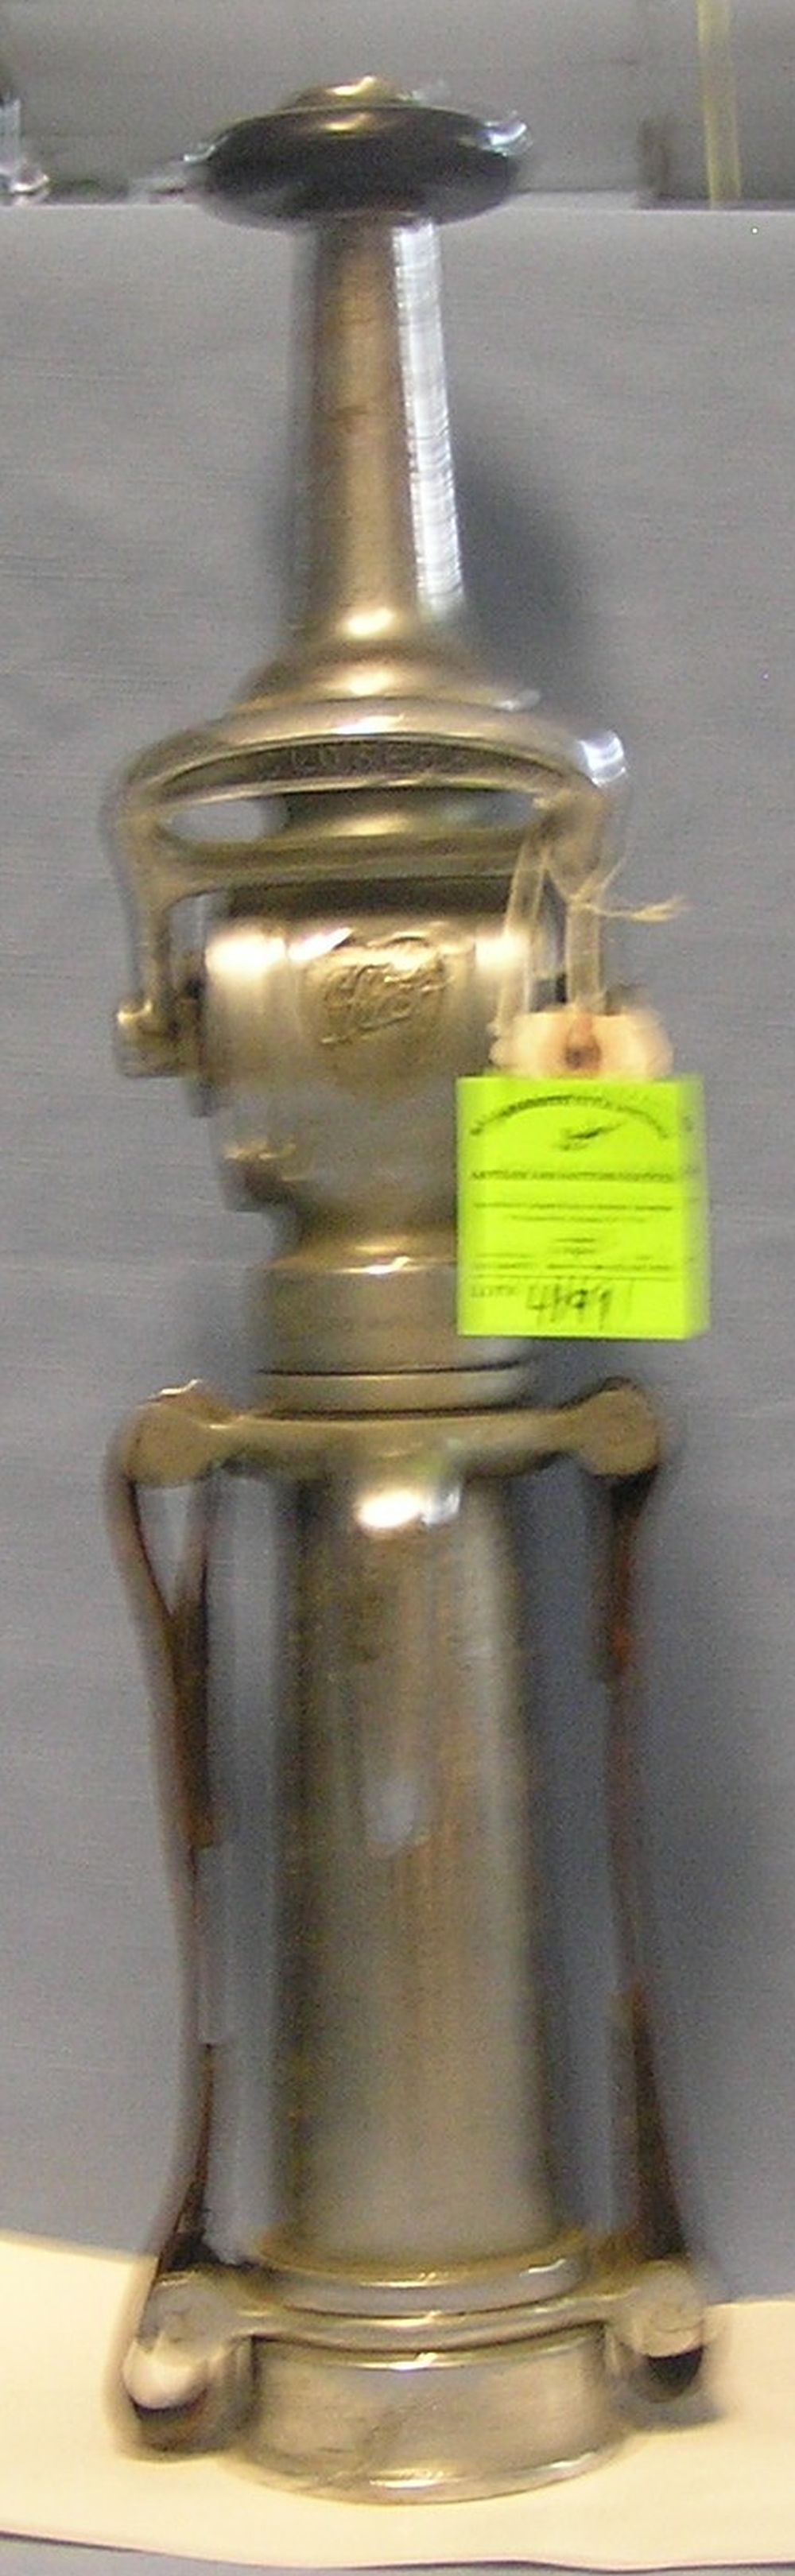 ANTIQUE FIRE NOZZLE BY ELKHART BRASS COMPANY